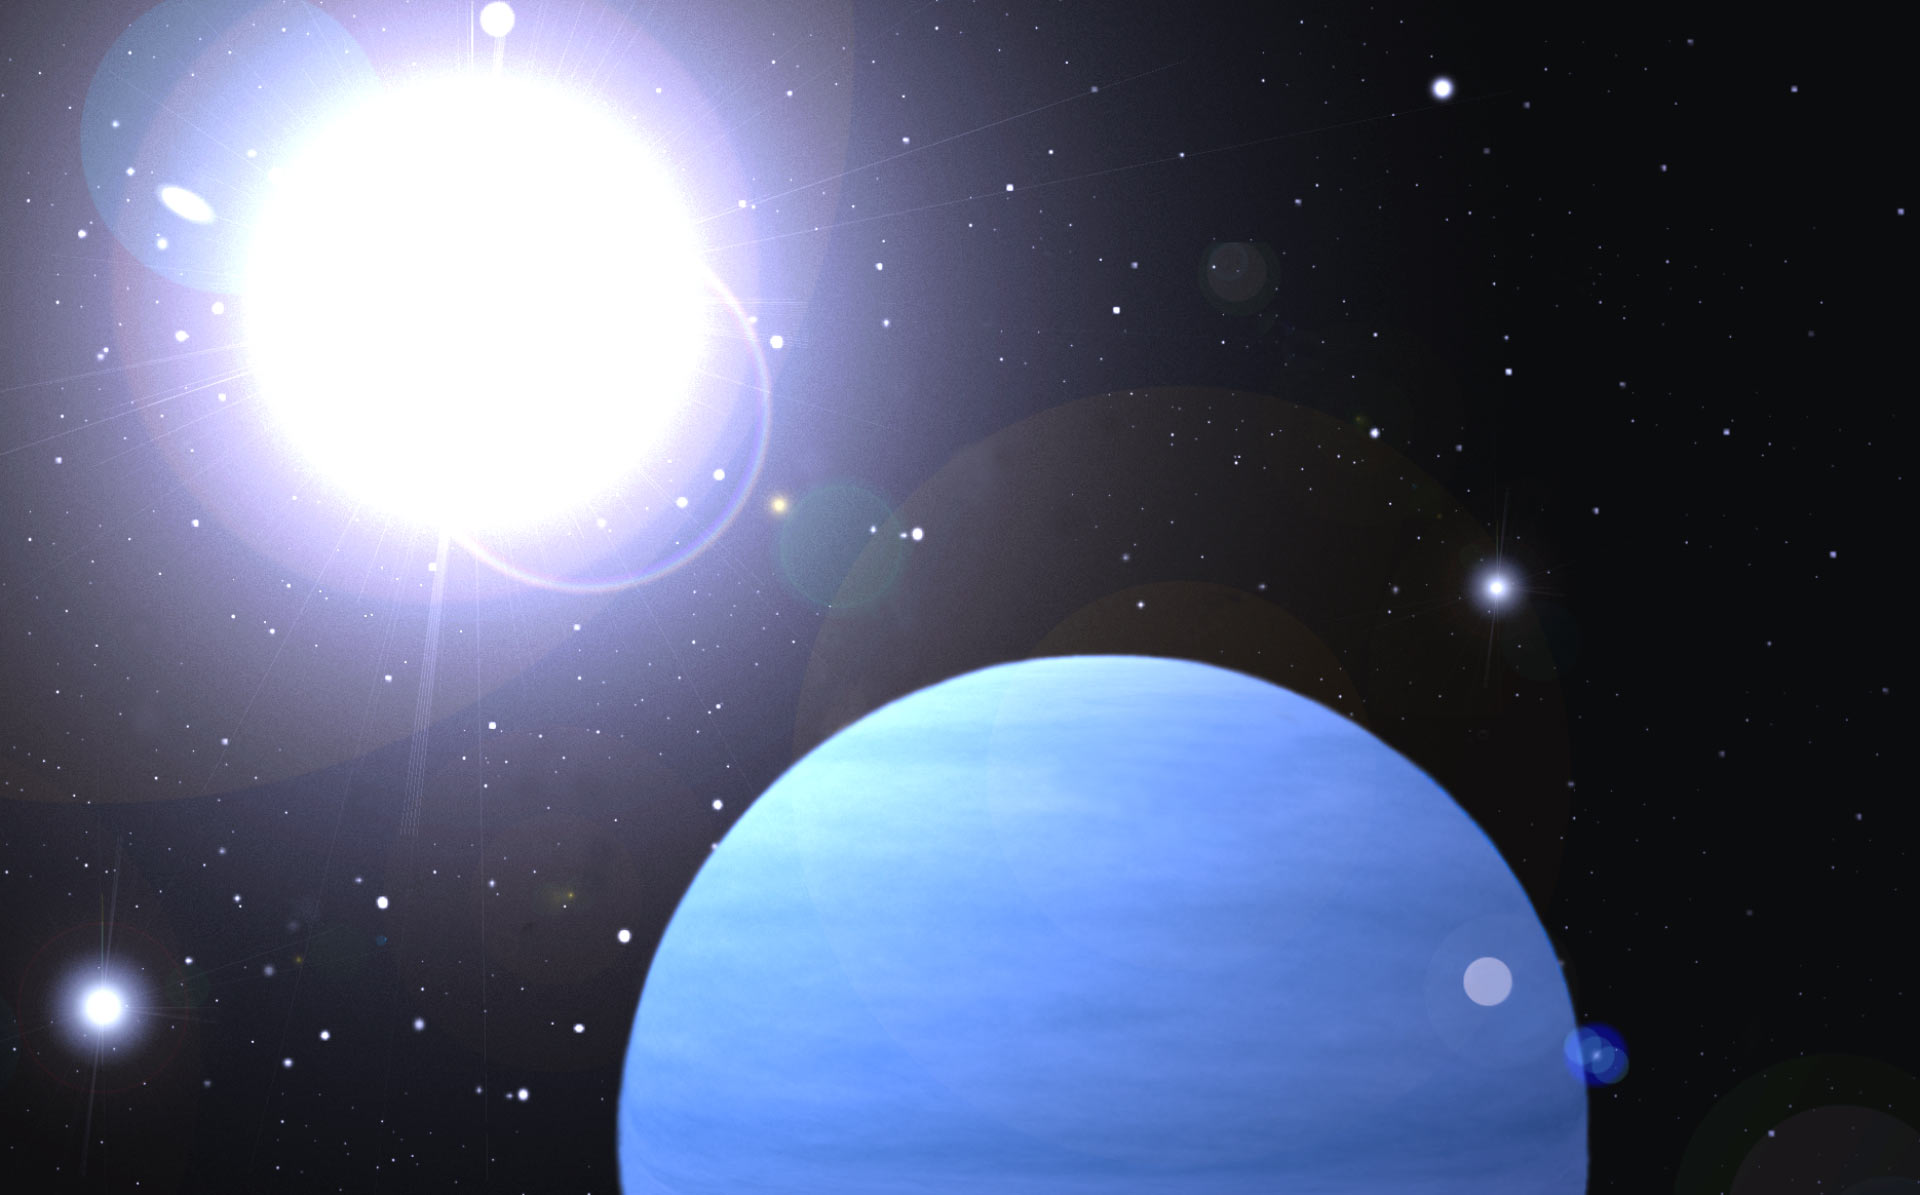 It's never cloudy on this newly discovered exoplanet